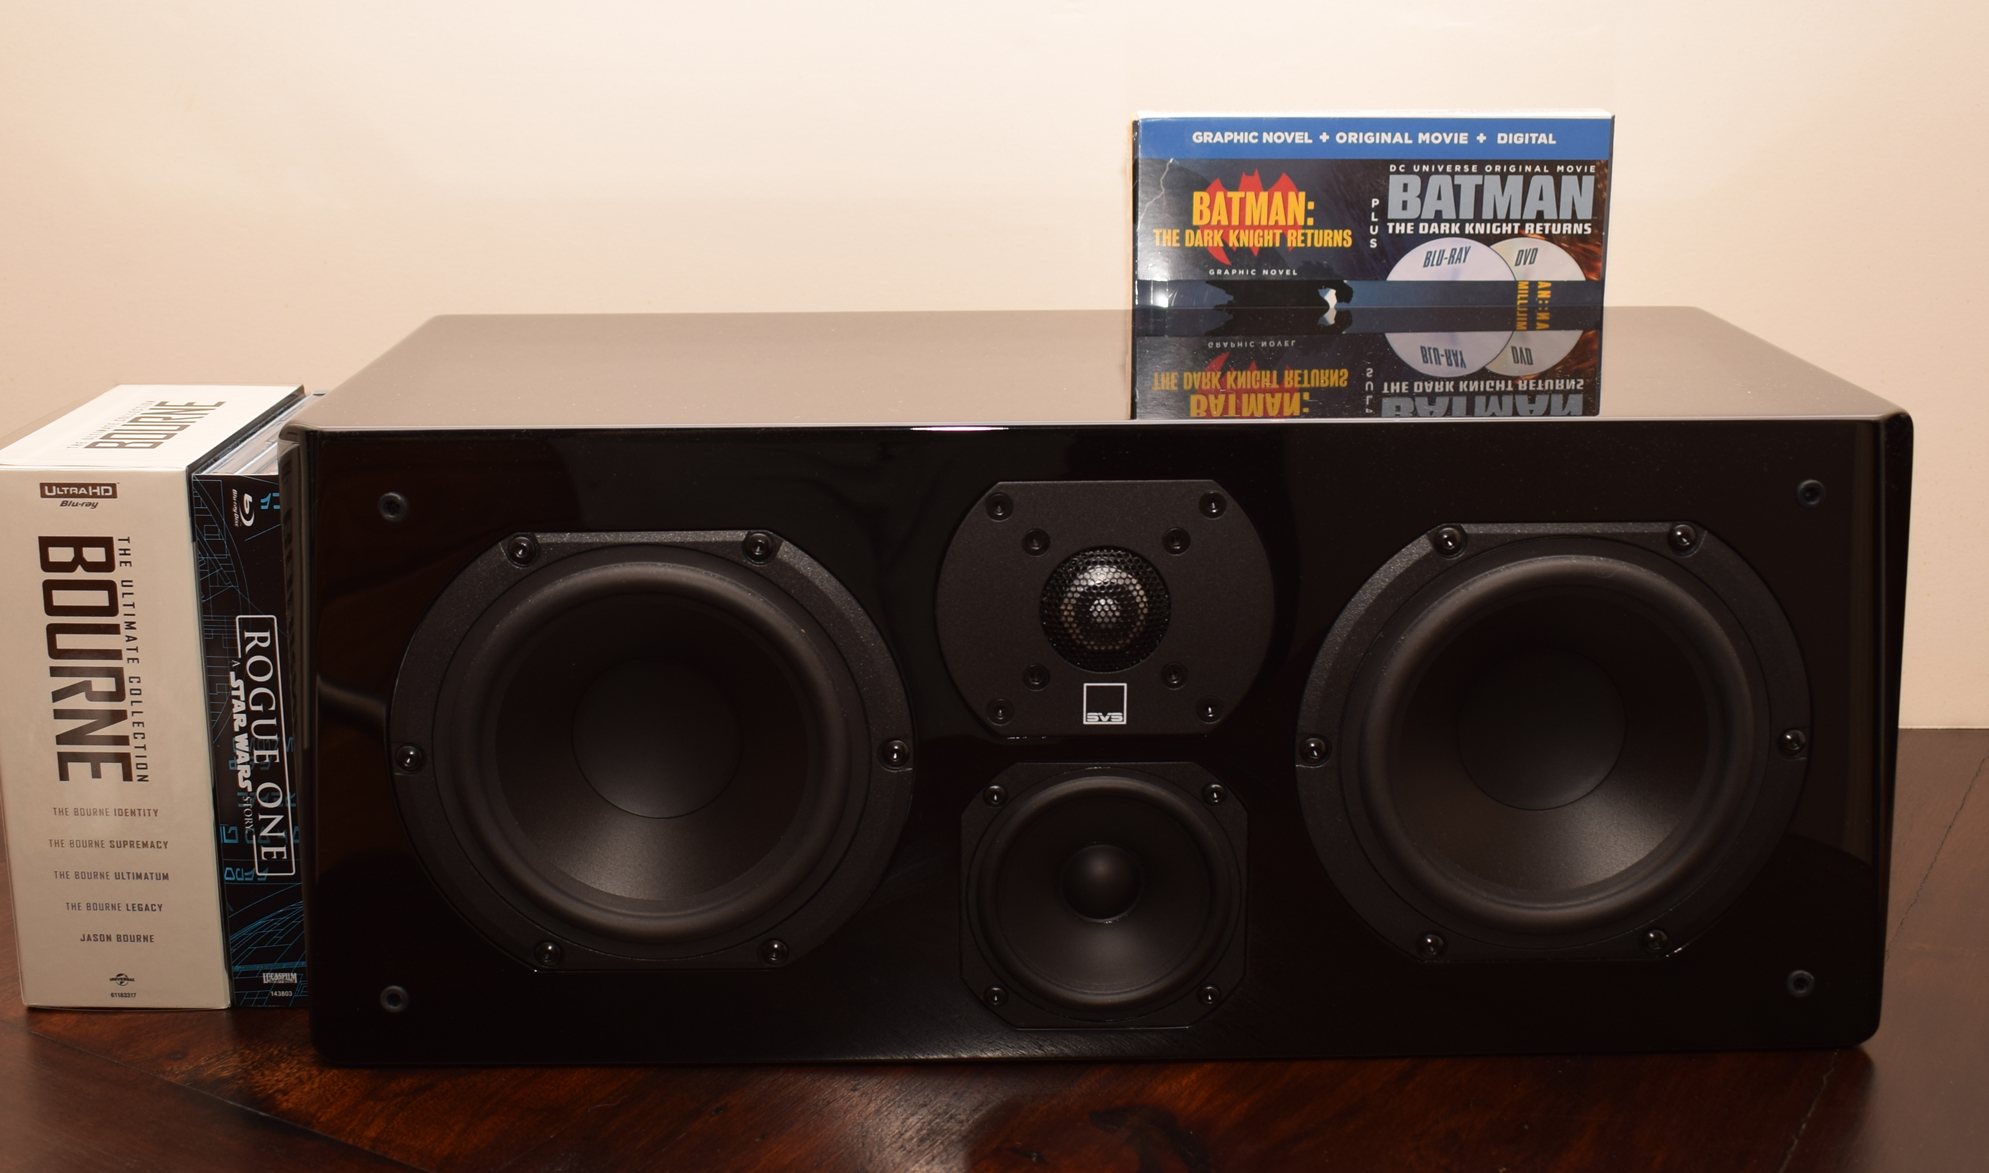 SVS Prime Center Speaker Review - Without Screen - Rogue One, Bourne, Dark Knight Returns Collection